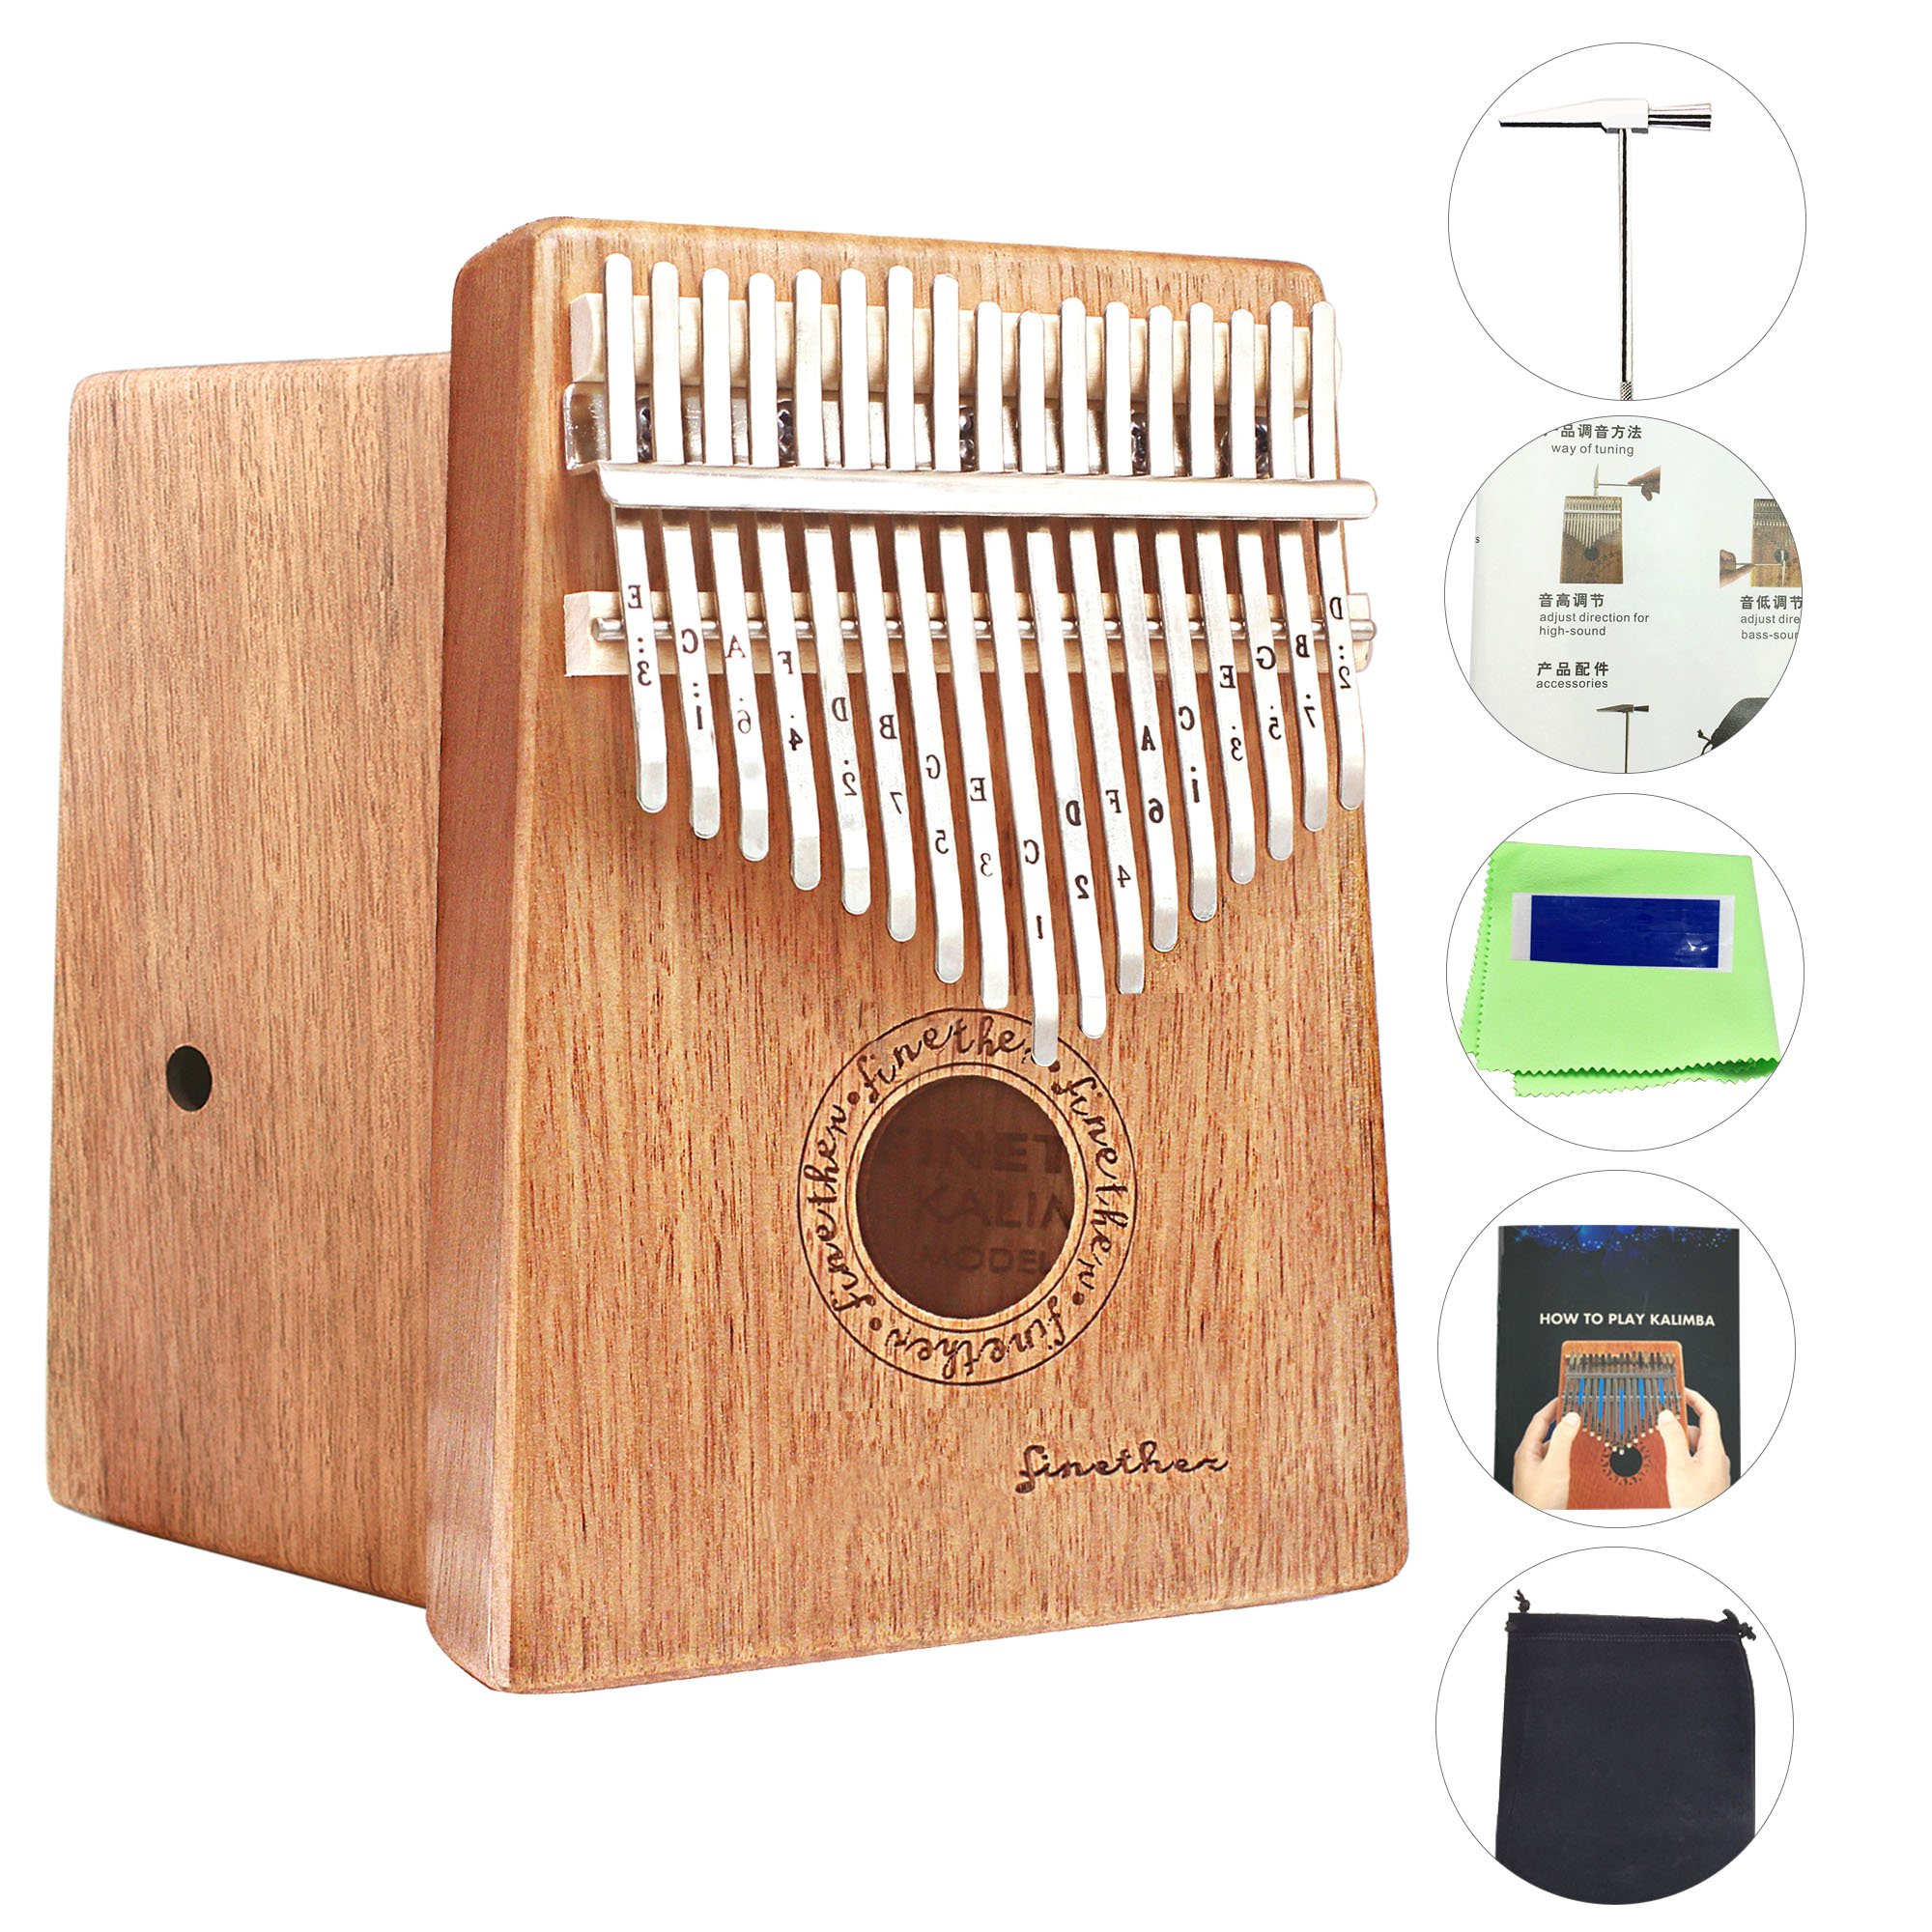 17 Keys Mahogany Kalimba Thumb Piano Wood Mbira Sanza Finger Percussion Pocket Keyboard w/Calibrating Tune Hammer for Beginners and Children (Mahogany) by AHongem (Image #1)